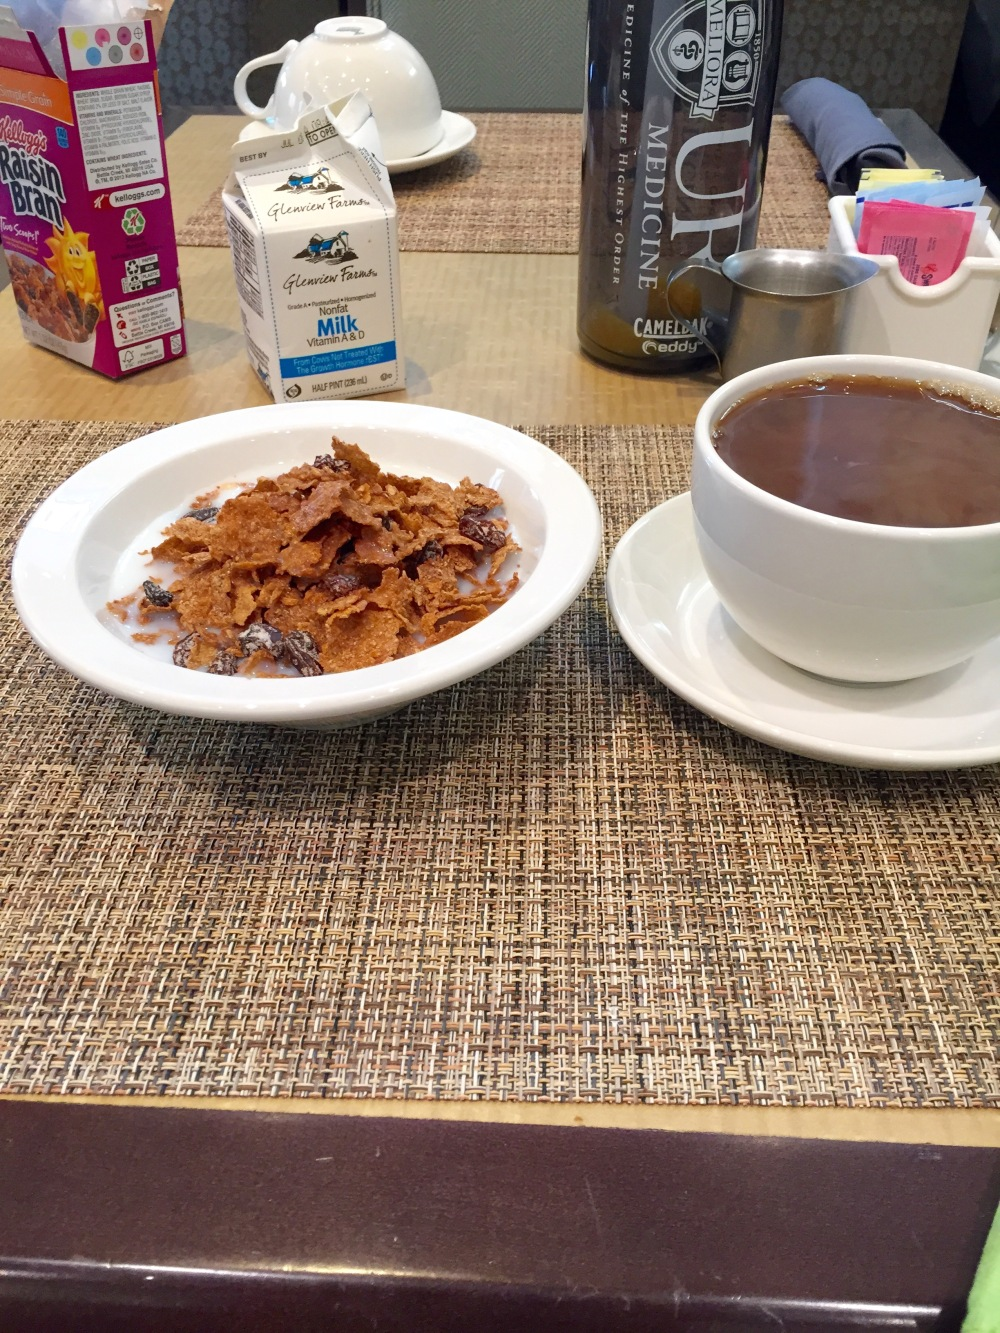 My go-to hotel breakfast. A Kindle is the perfect meal companion when you're eating alone.